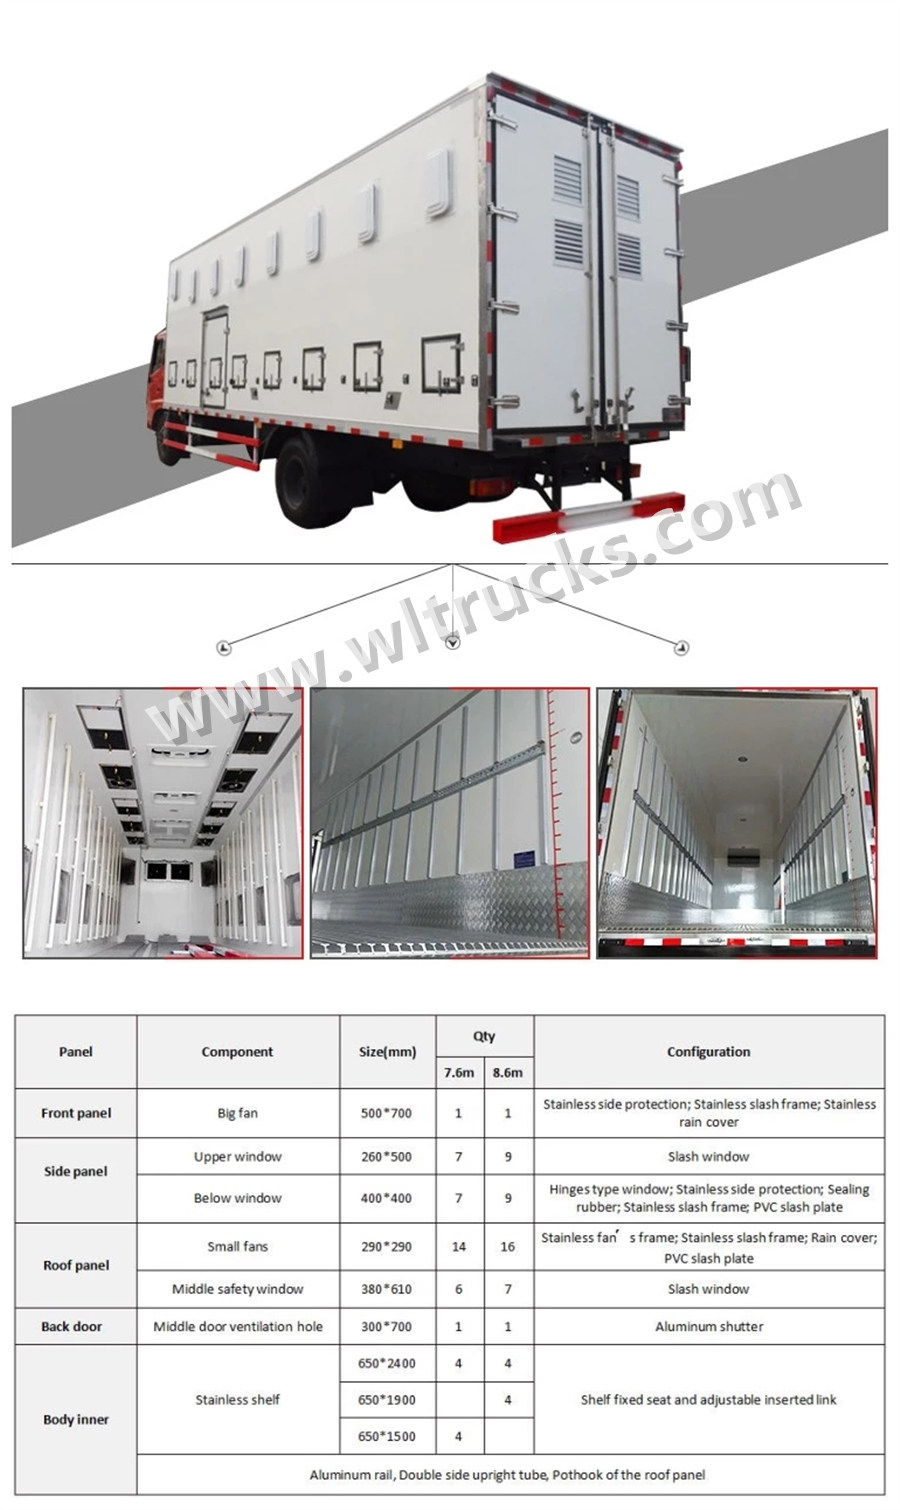 Chick transport vehicle detailed picture